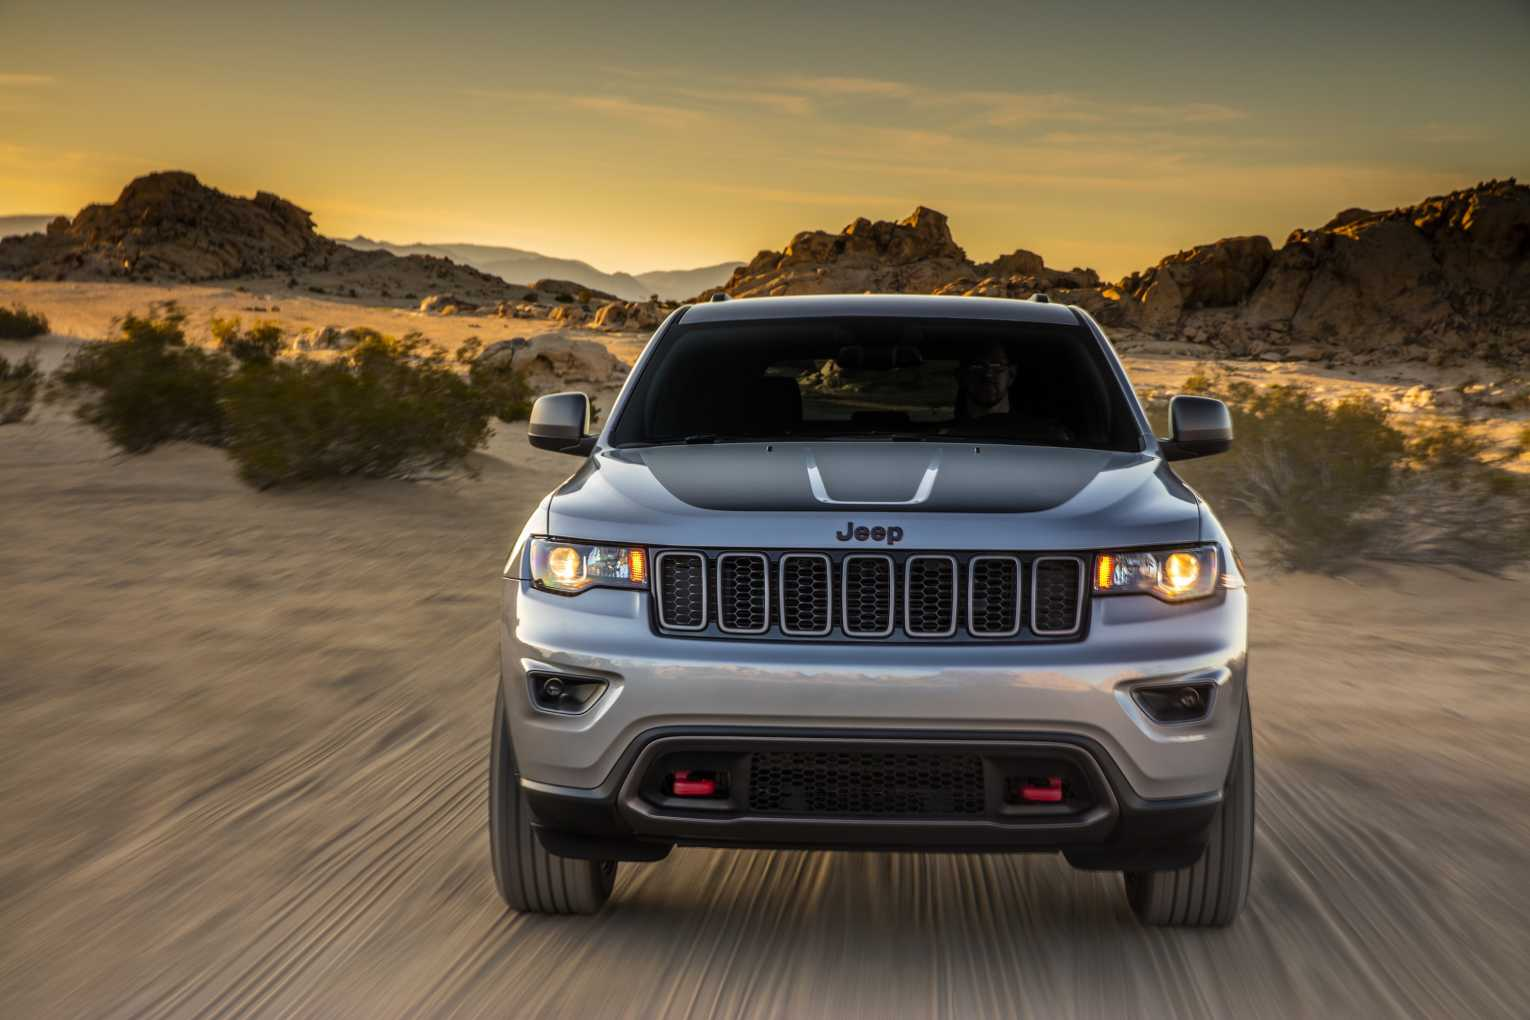 2017 Jeep Grand Cherokee Goes Further Off Road Adds More Features And Offers Remarkable Performance